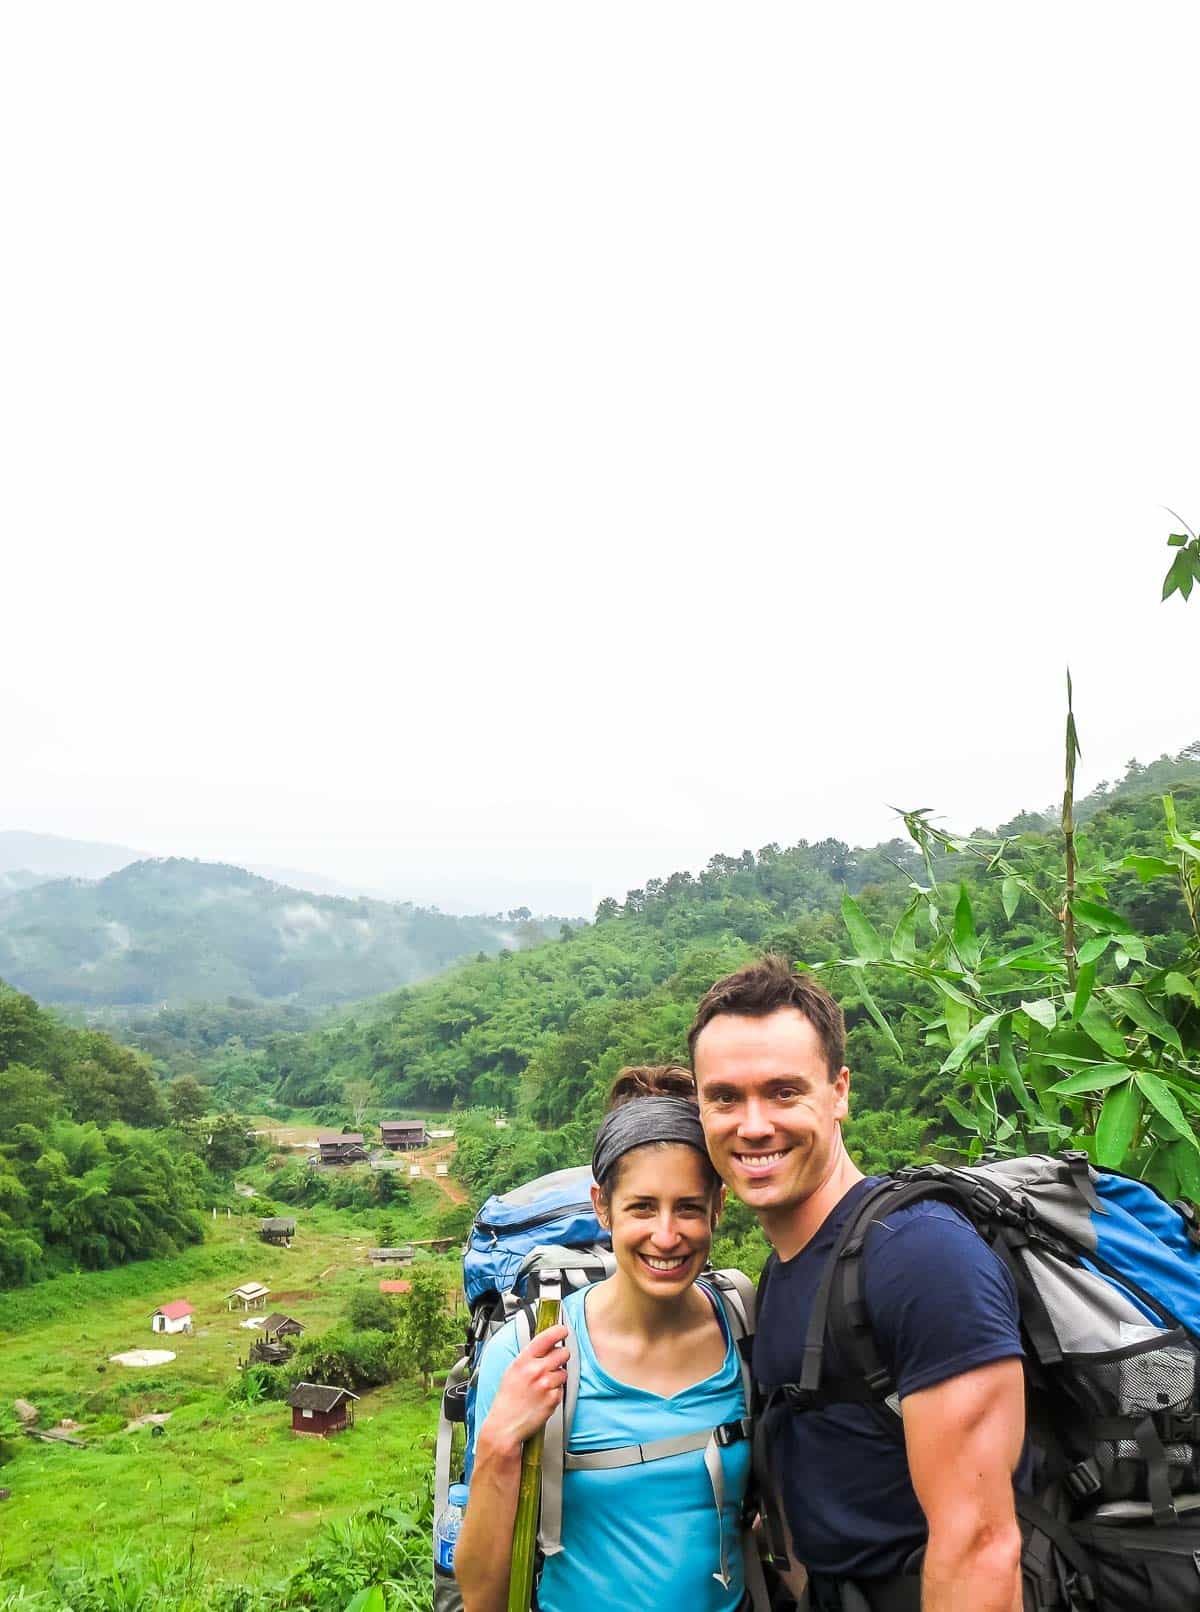 Hiking in Thailand - A brief guide